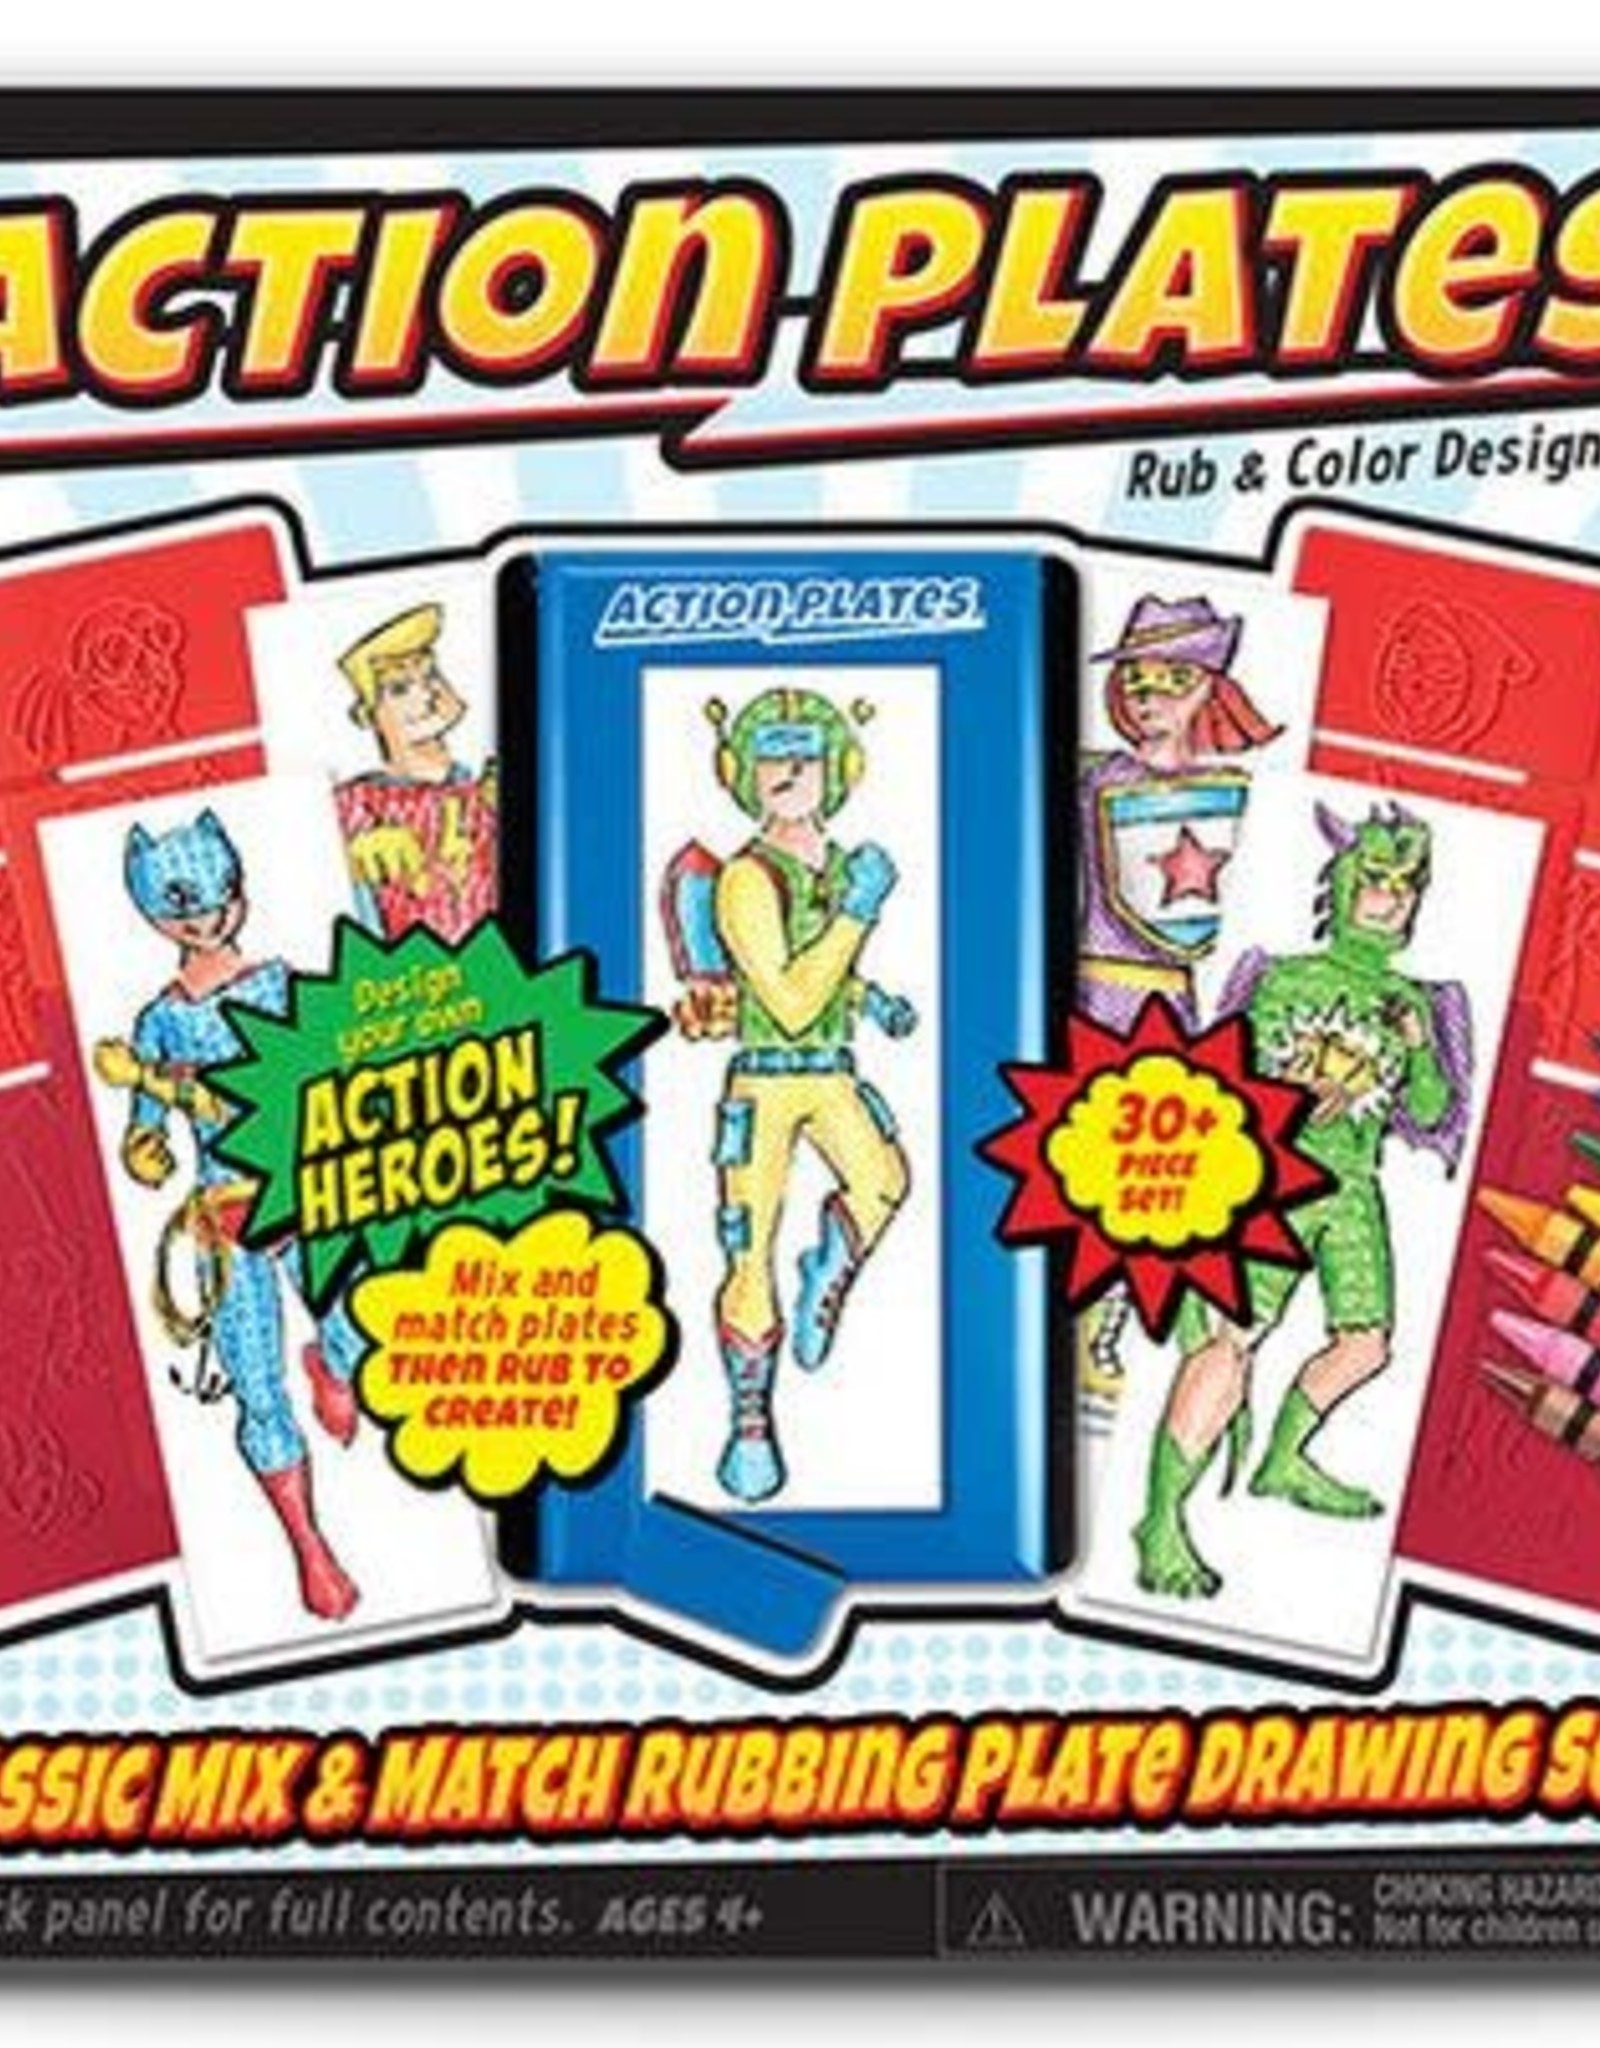 Action Plates Action Plates Deluxe Kit